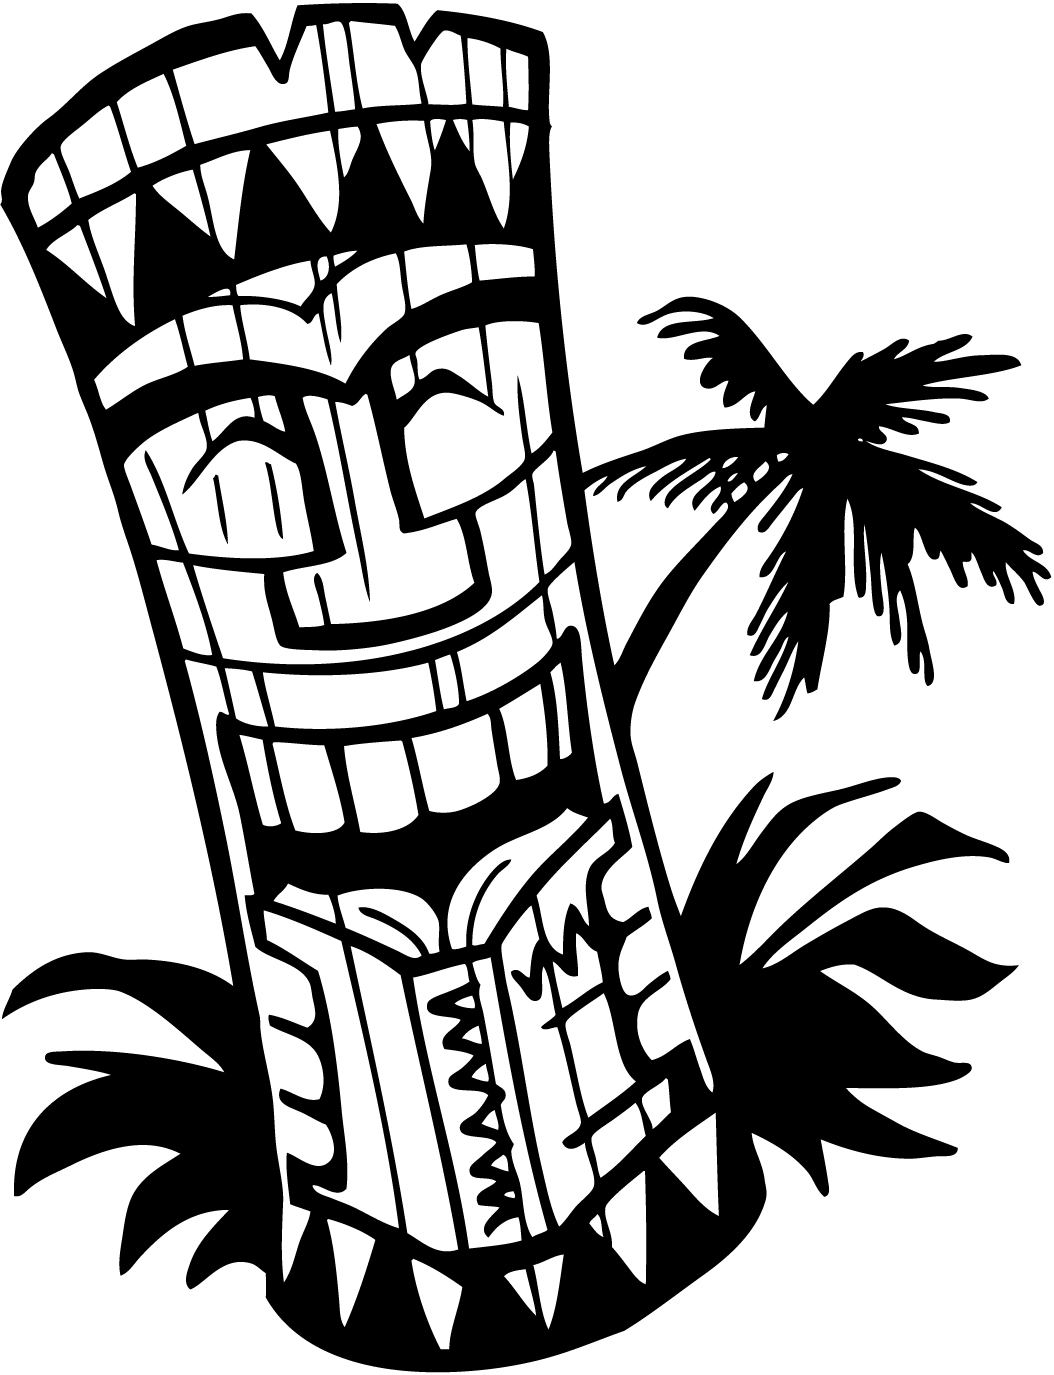 Tiki bar black and white vector clipart vector royalty free Free Tiki Bar Cliparts, Download Free Clip Art, Free Clip ... vector royalty free